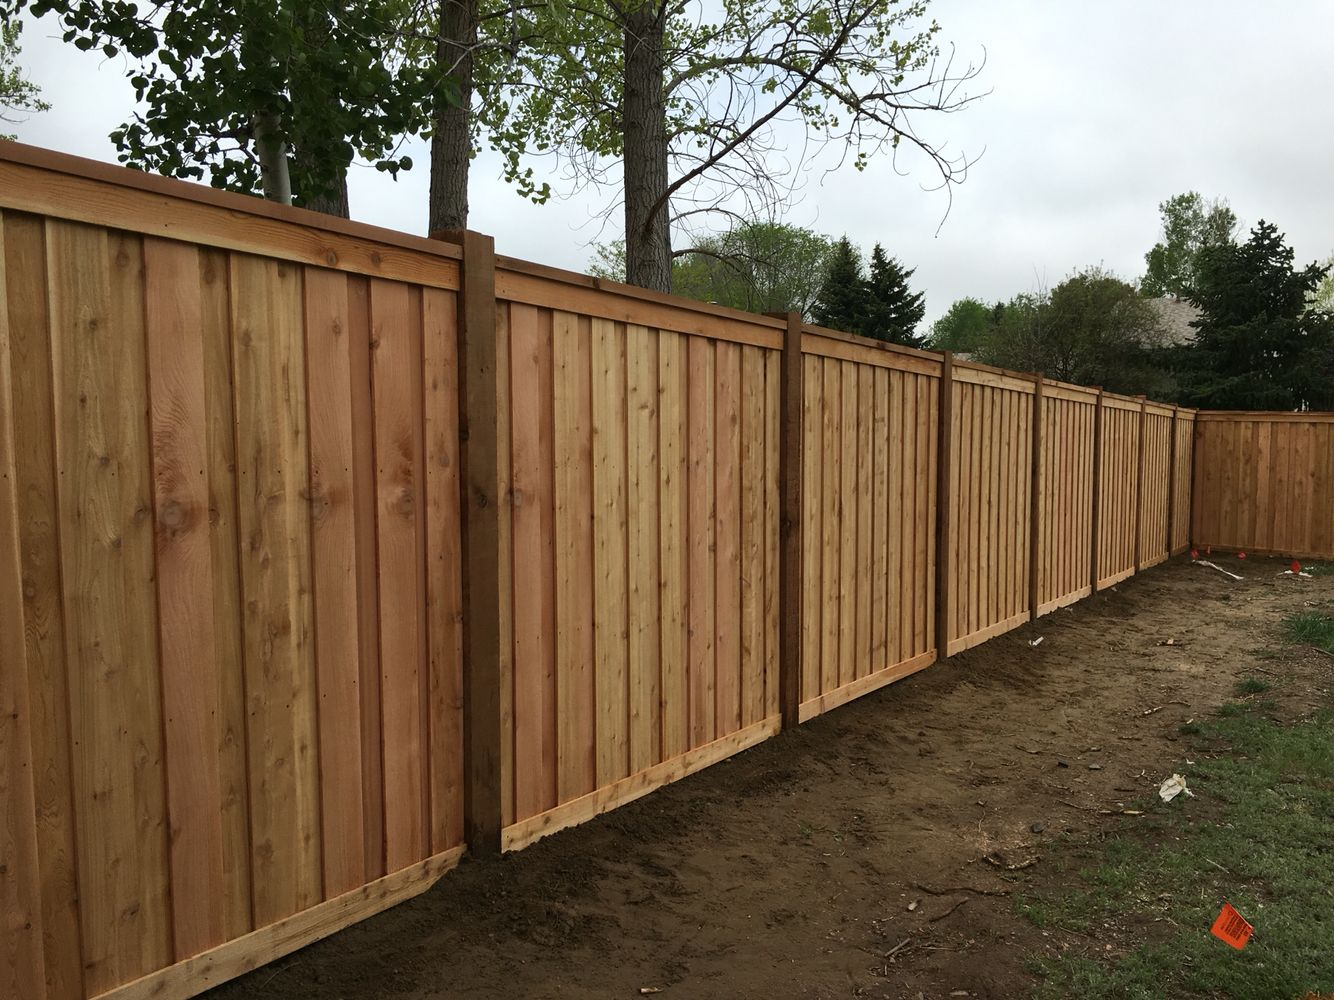 7 39 tall cedar privacy fence with 6x6 posts 2x6 top cap 6 for Types of fences